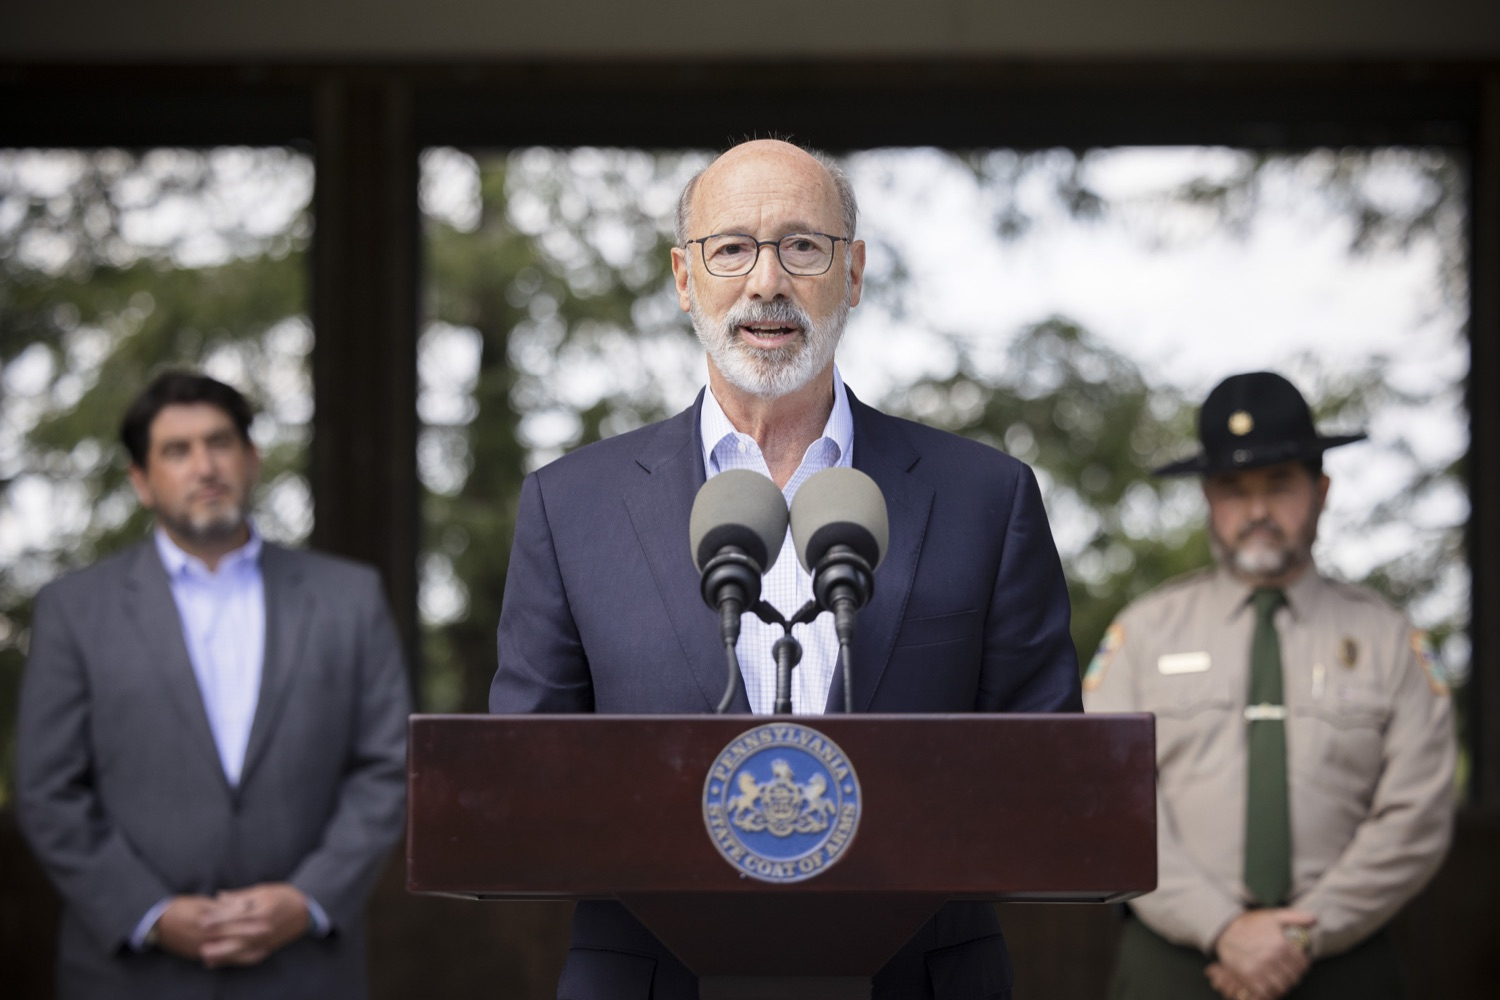 """<a href=""""https://filesource.wostreaming.net/commonwealthofpa/photo/19111_gov_parkVaccines_dz_014.jpg"""" target=""""_blank"""">⇣Download Photo<br></a>Pennsylvania Governor Tom Wolf speaking with the press.  Governor Tom Wolf today announced that the Department of Health (DOH) and Department of Conservation and Natural Resources (DCNR) are partnering to hold COVID-19 vaccine clinics at five state parks across the commonwealth to help expand access to the COVID-19 vaccine.  Harrisburg, PA -- September 10, 2021"""